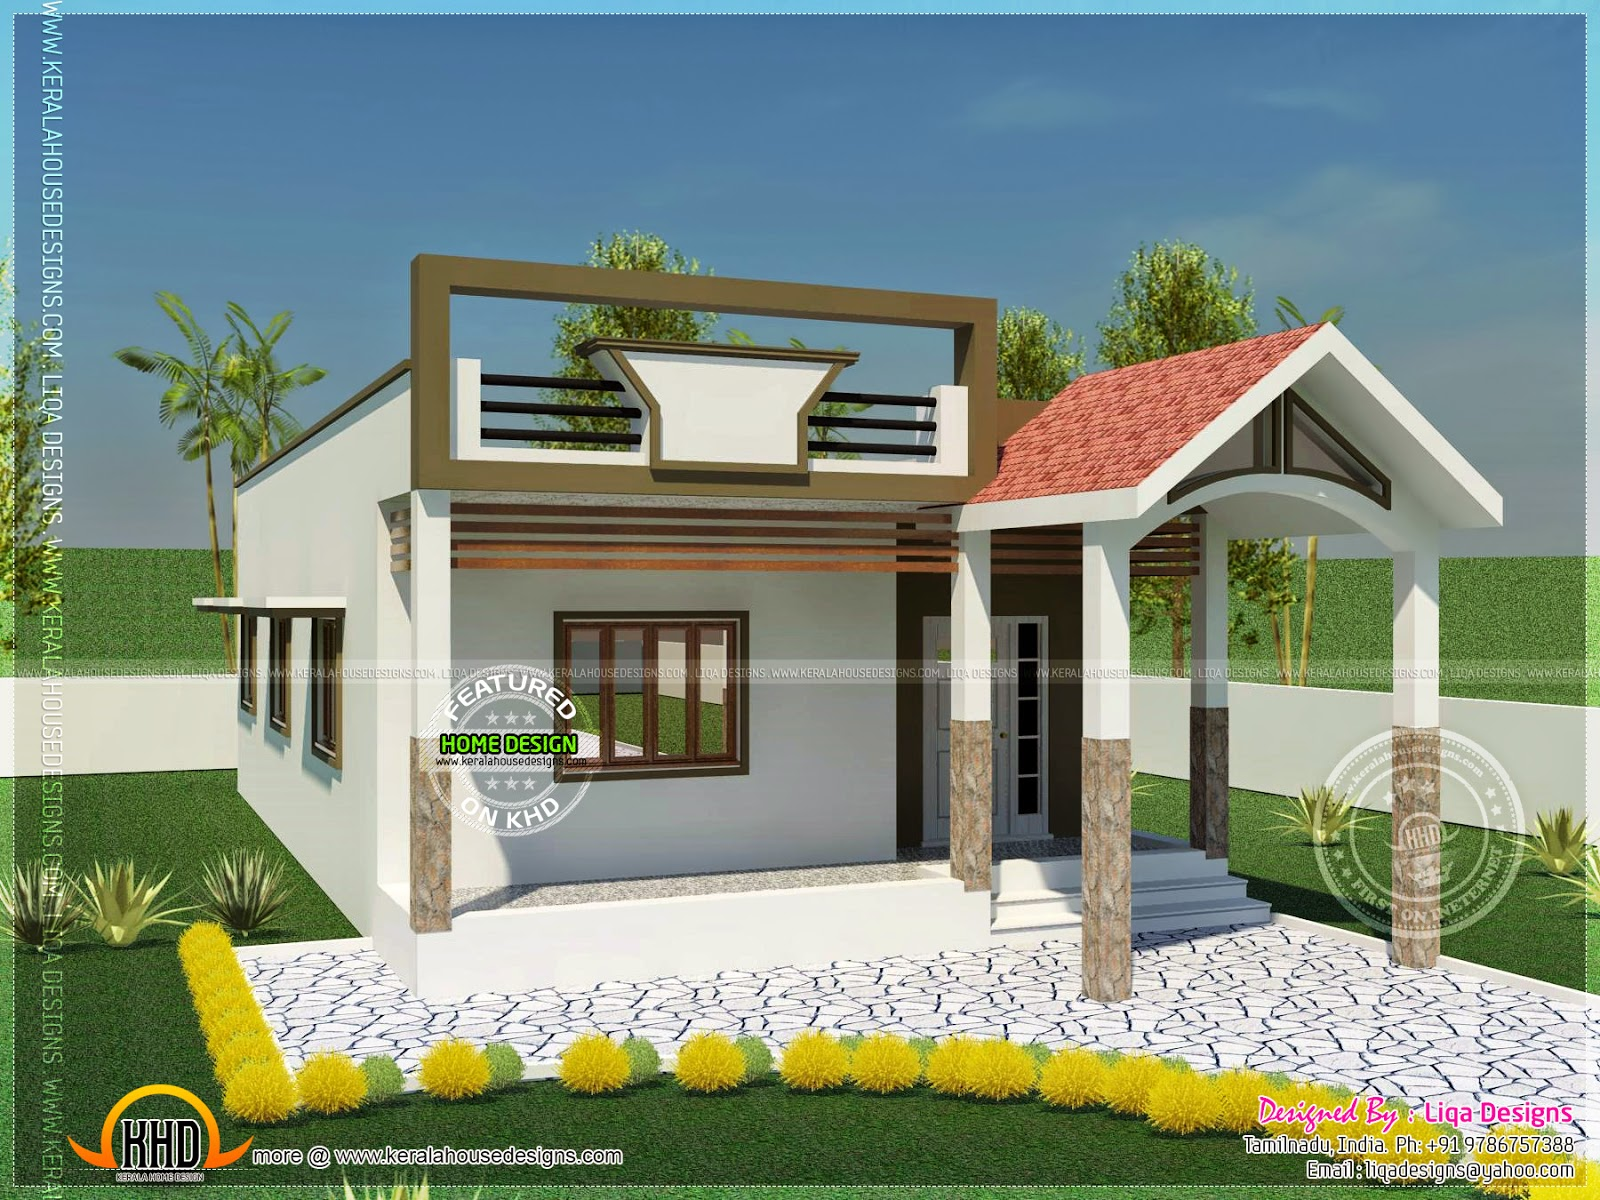 740 square feet single storied house kerala home design for Indian small house design 2 bedroom